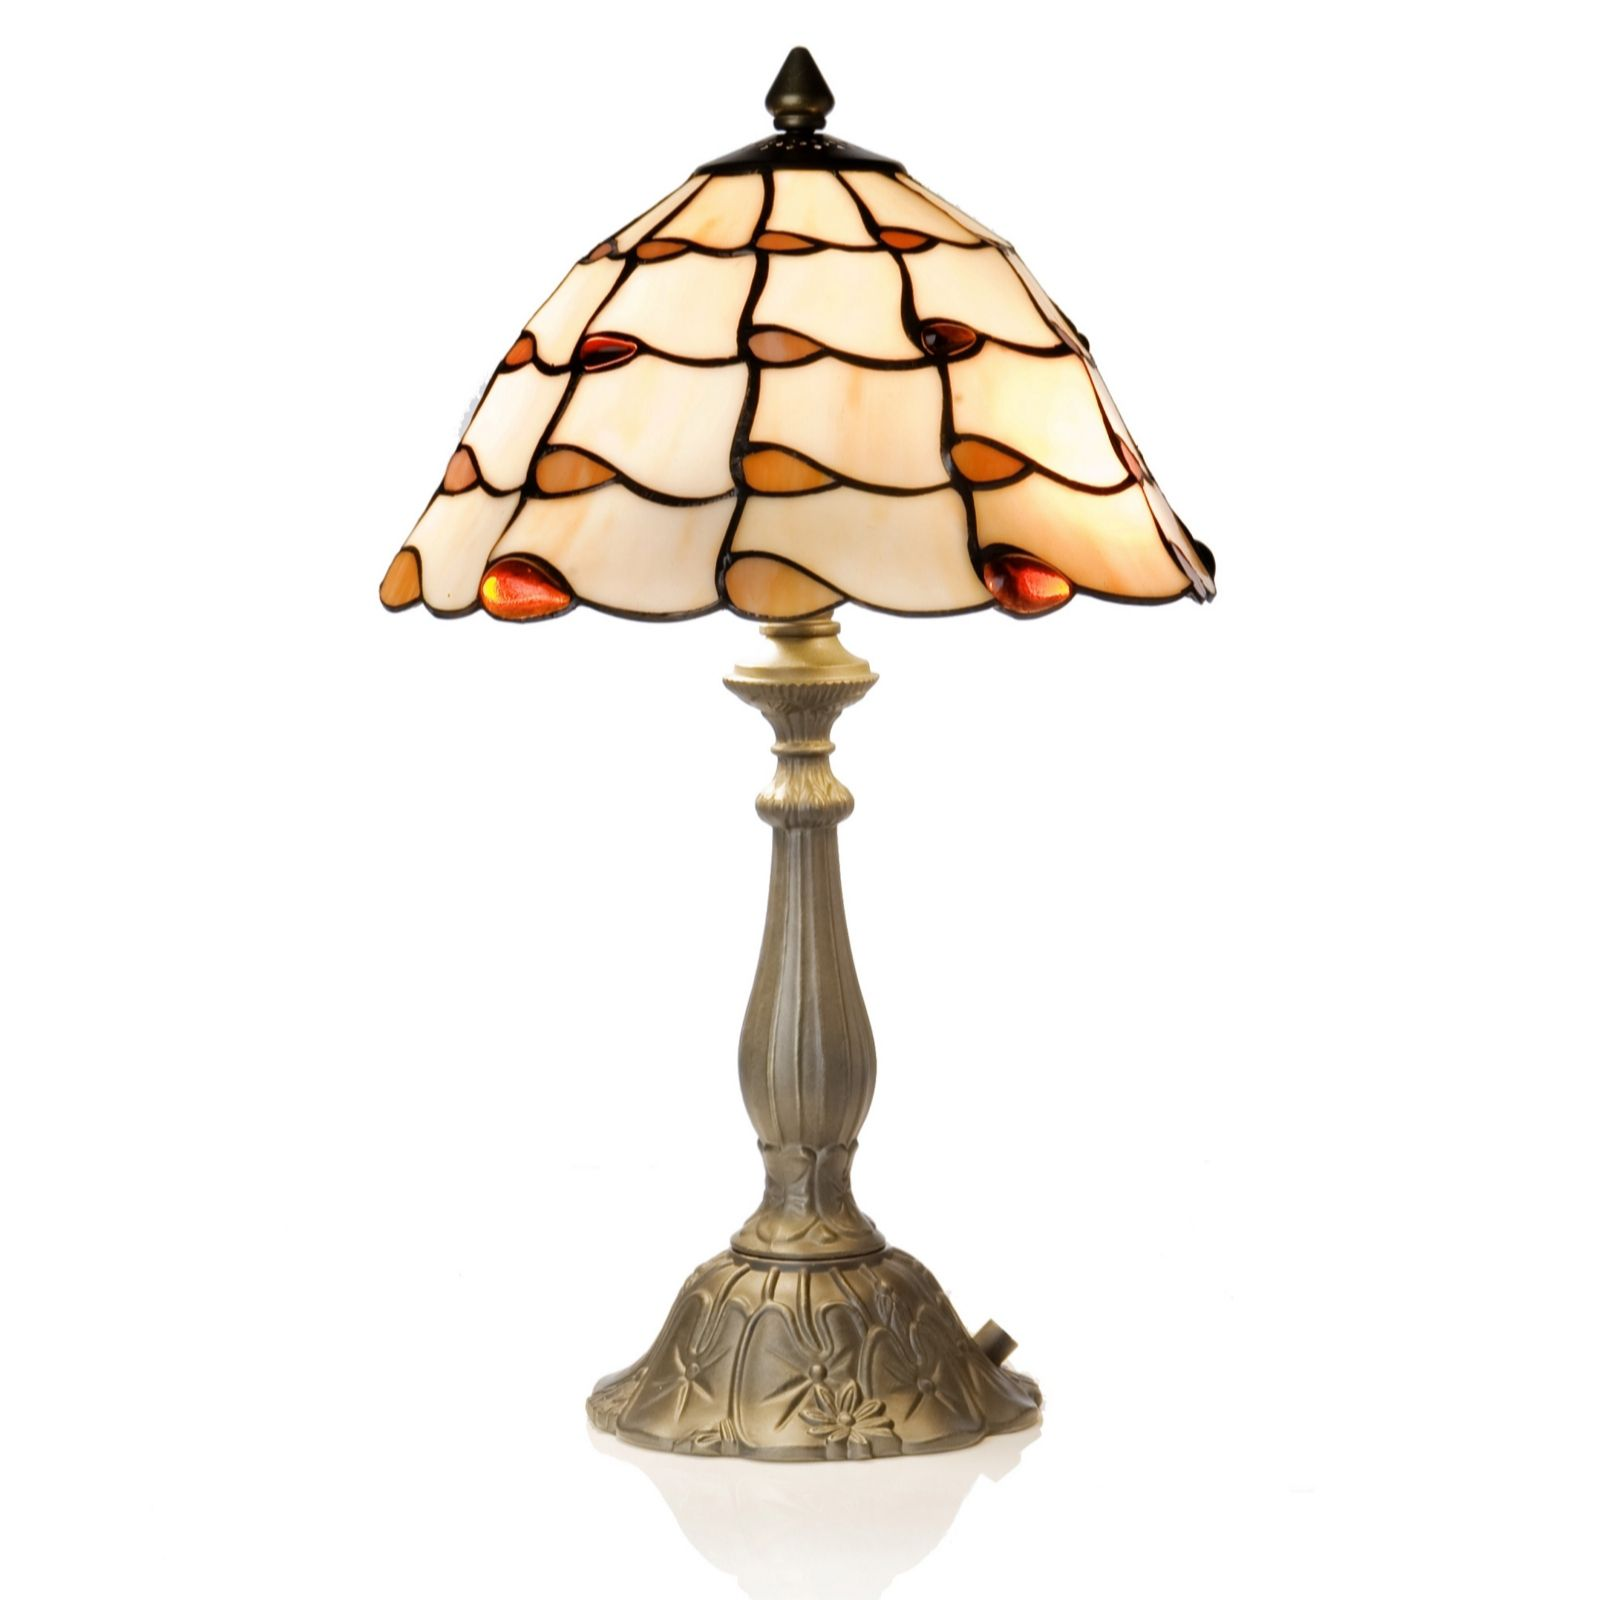 Wonderful Tiffany Style Handcrafted Jewelled Ballroom Skirt Table Lamp   QVC UK